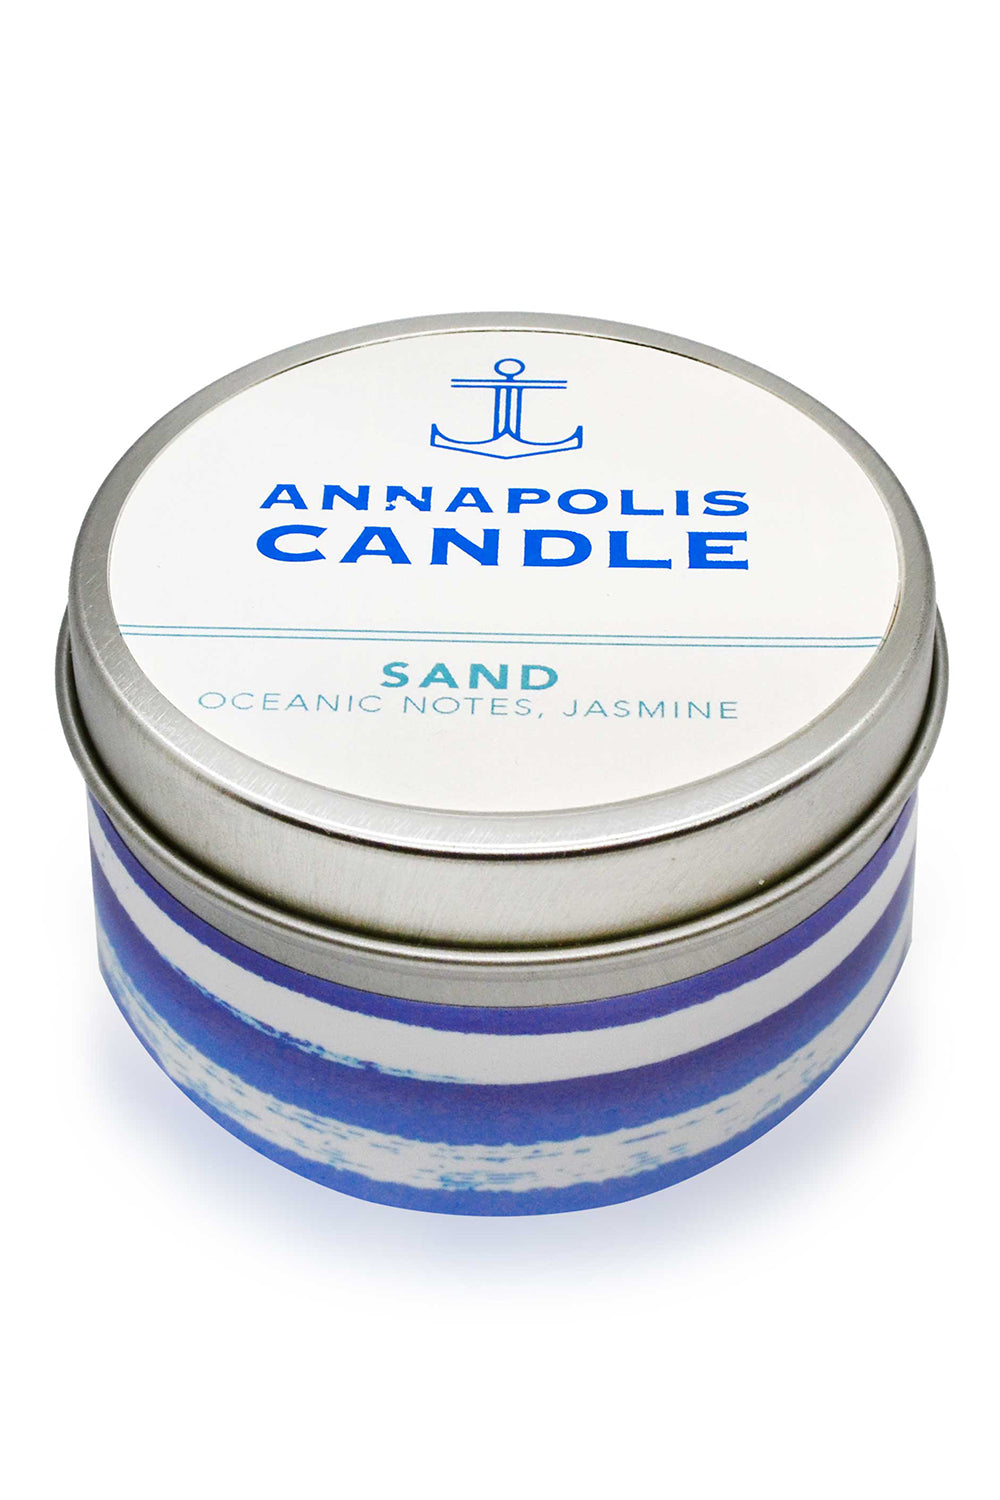 *NEW* Tin Annapolis Candle - Sand